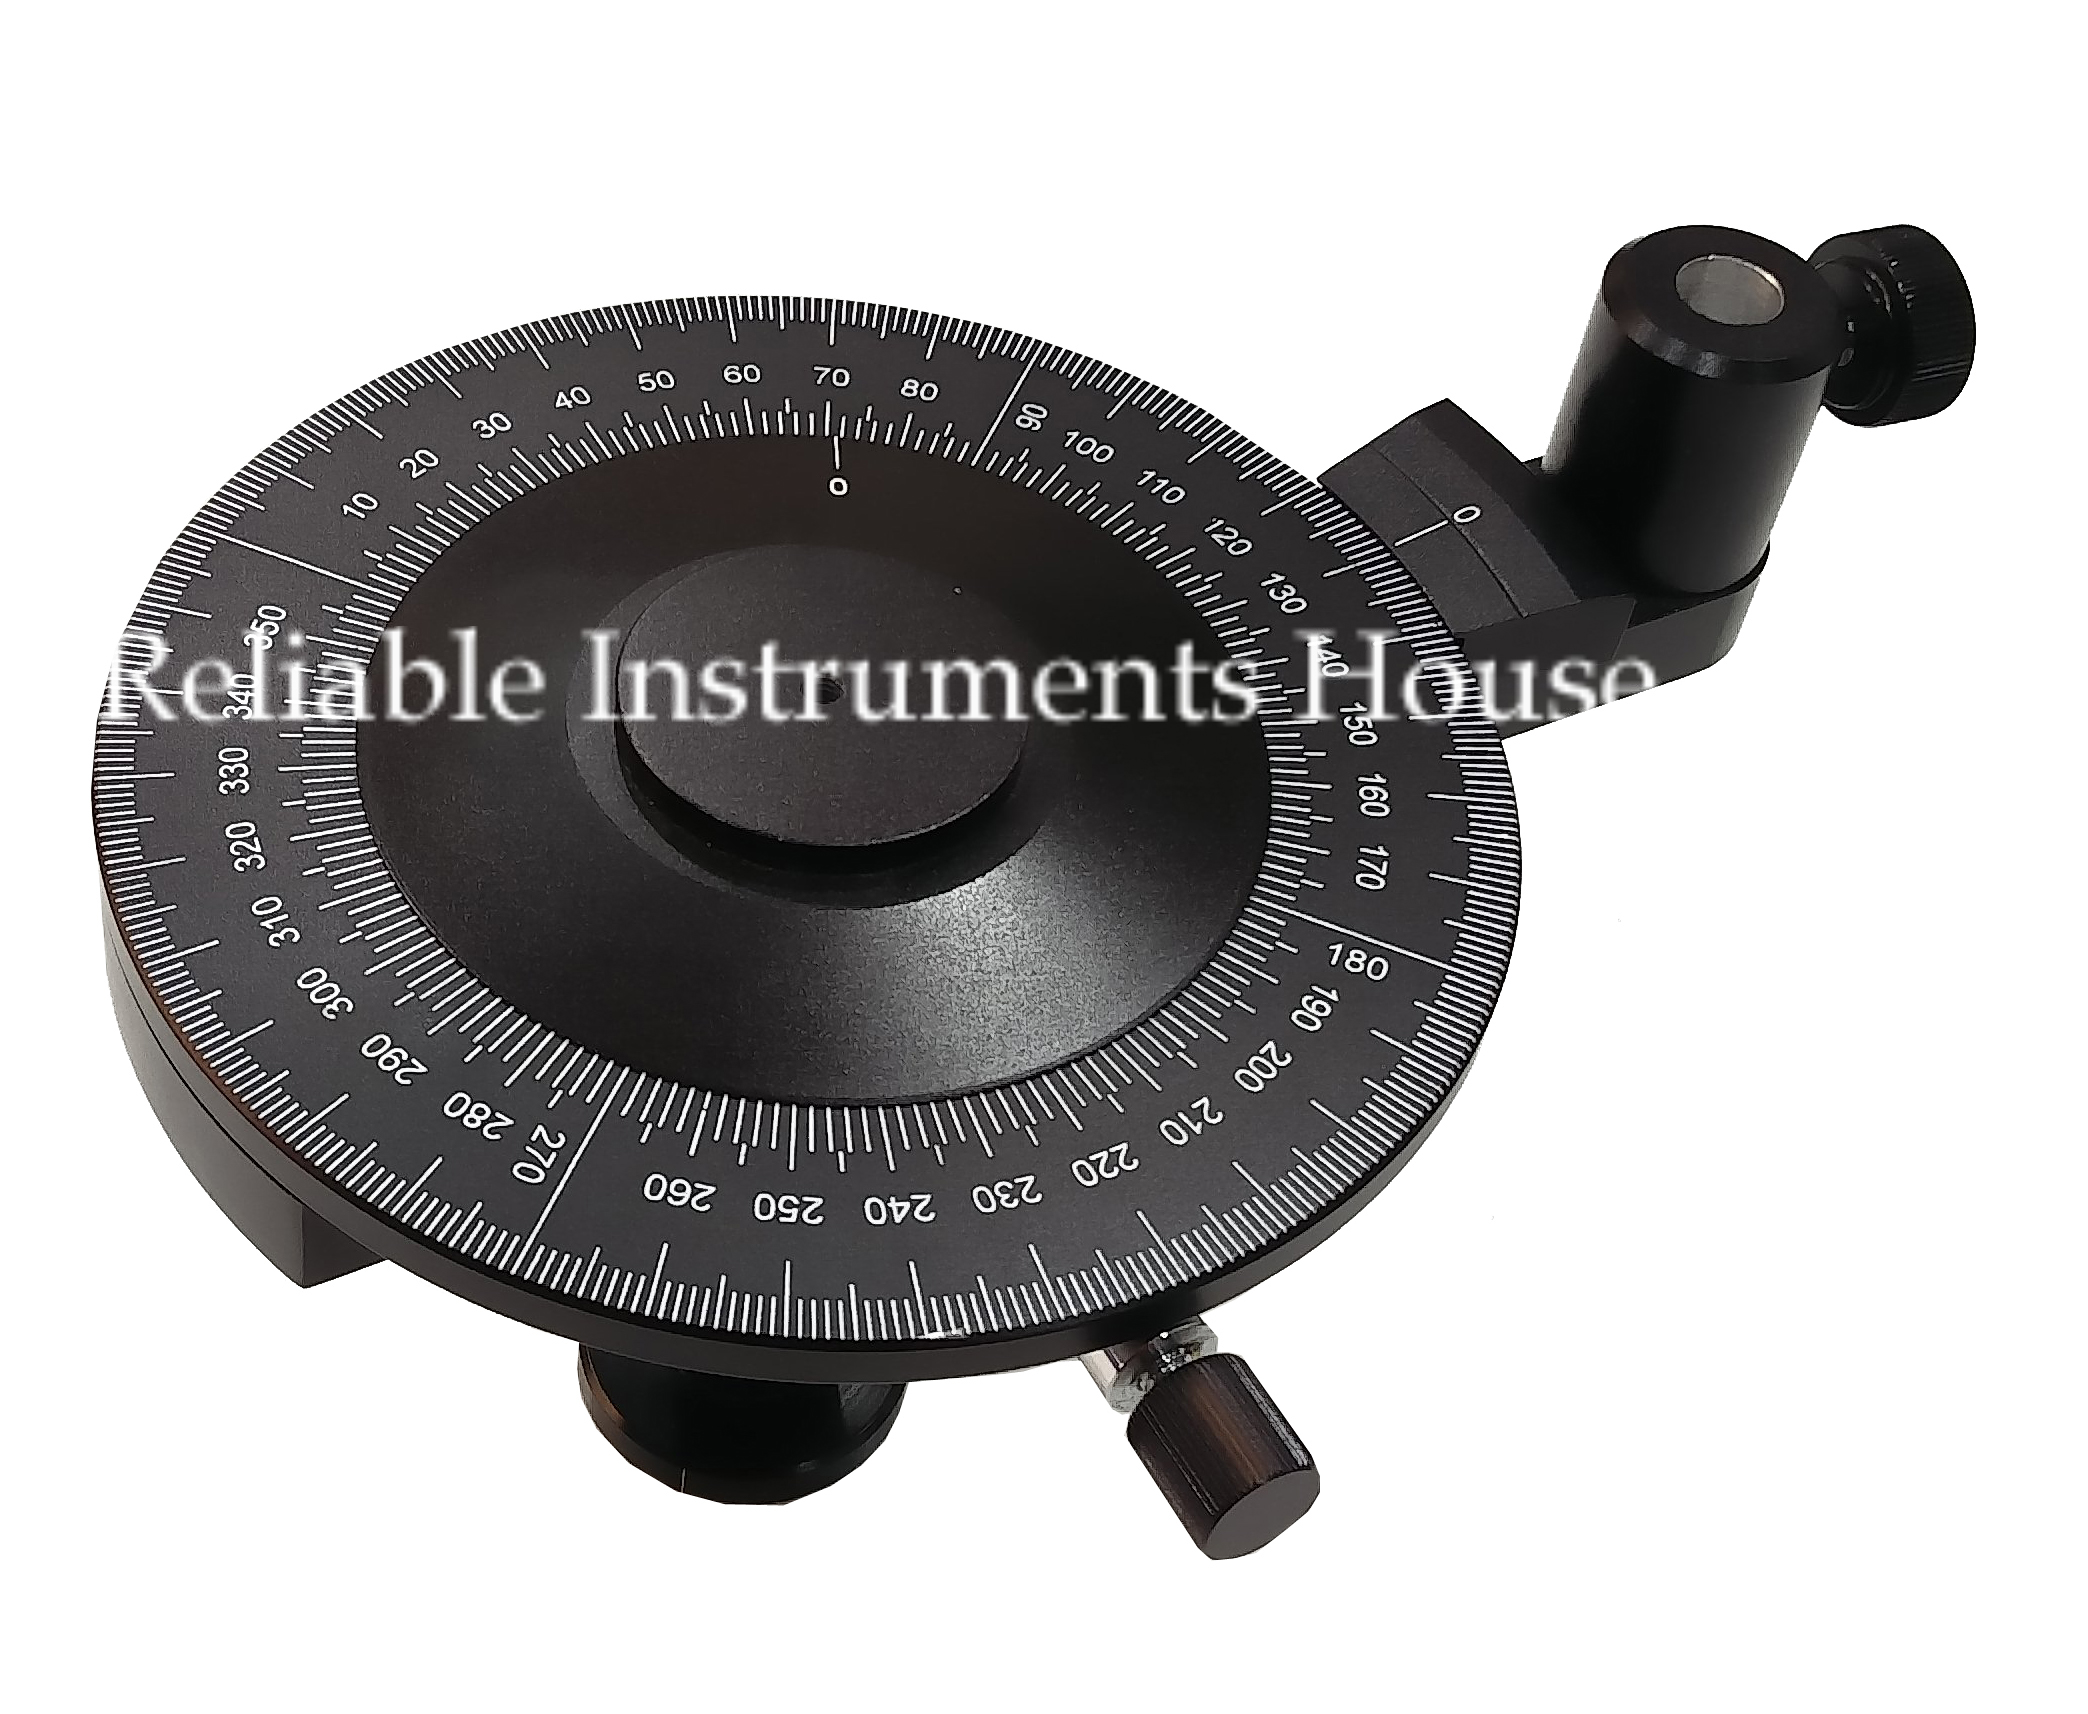 Goniometer with detector mount OM-2550 Image